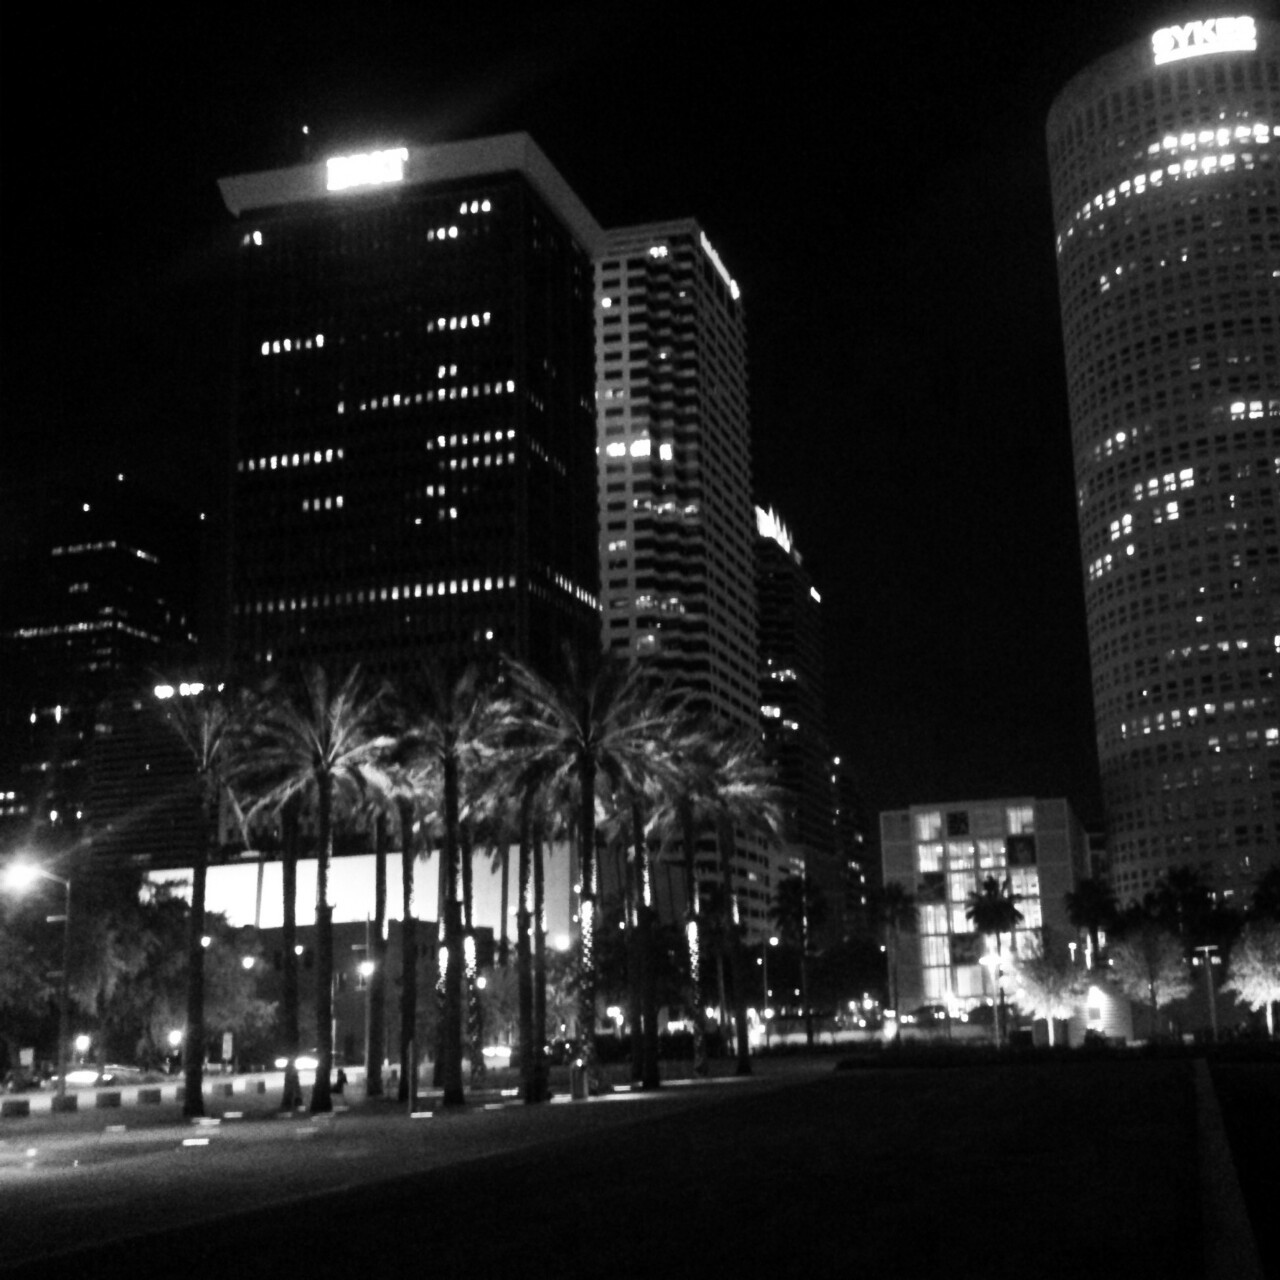 Downtown Tampa shines beautifully at night.